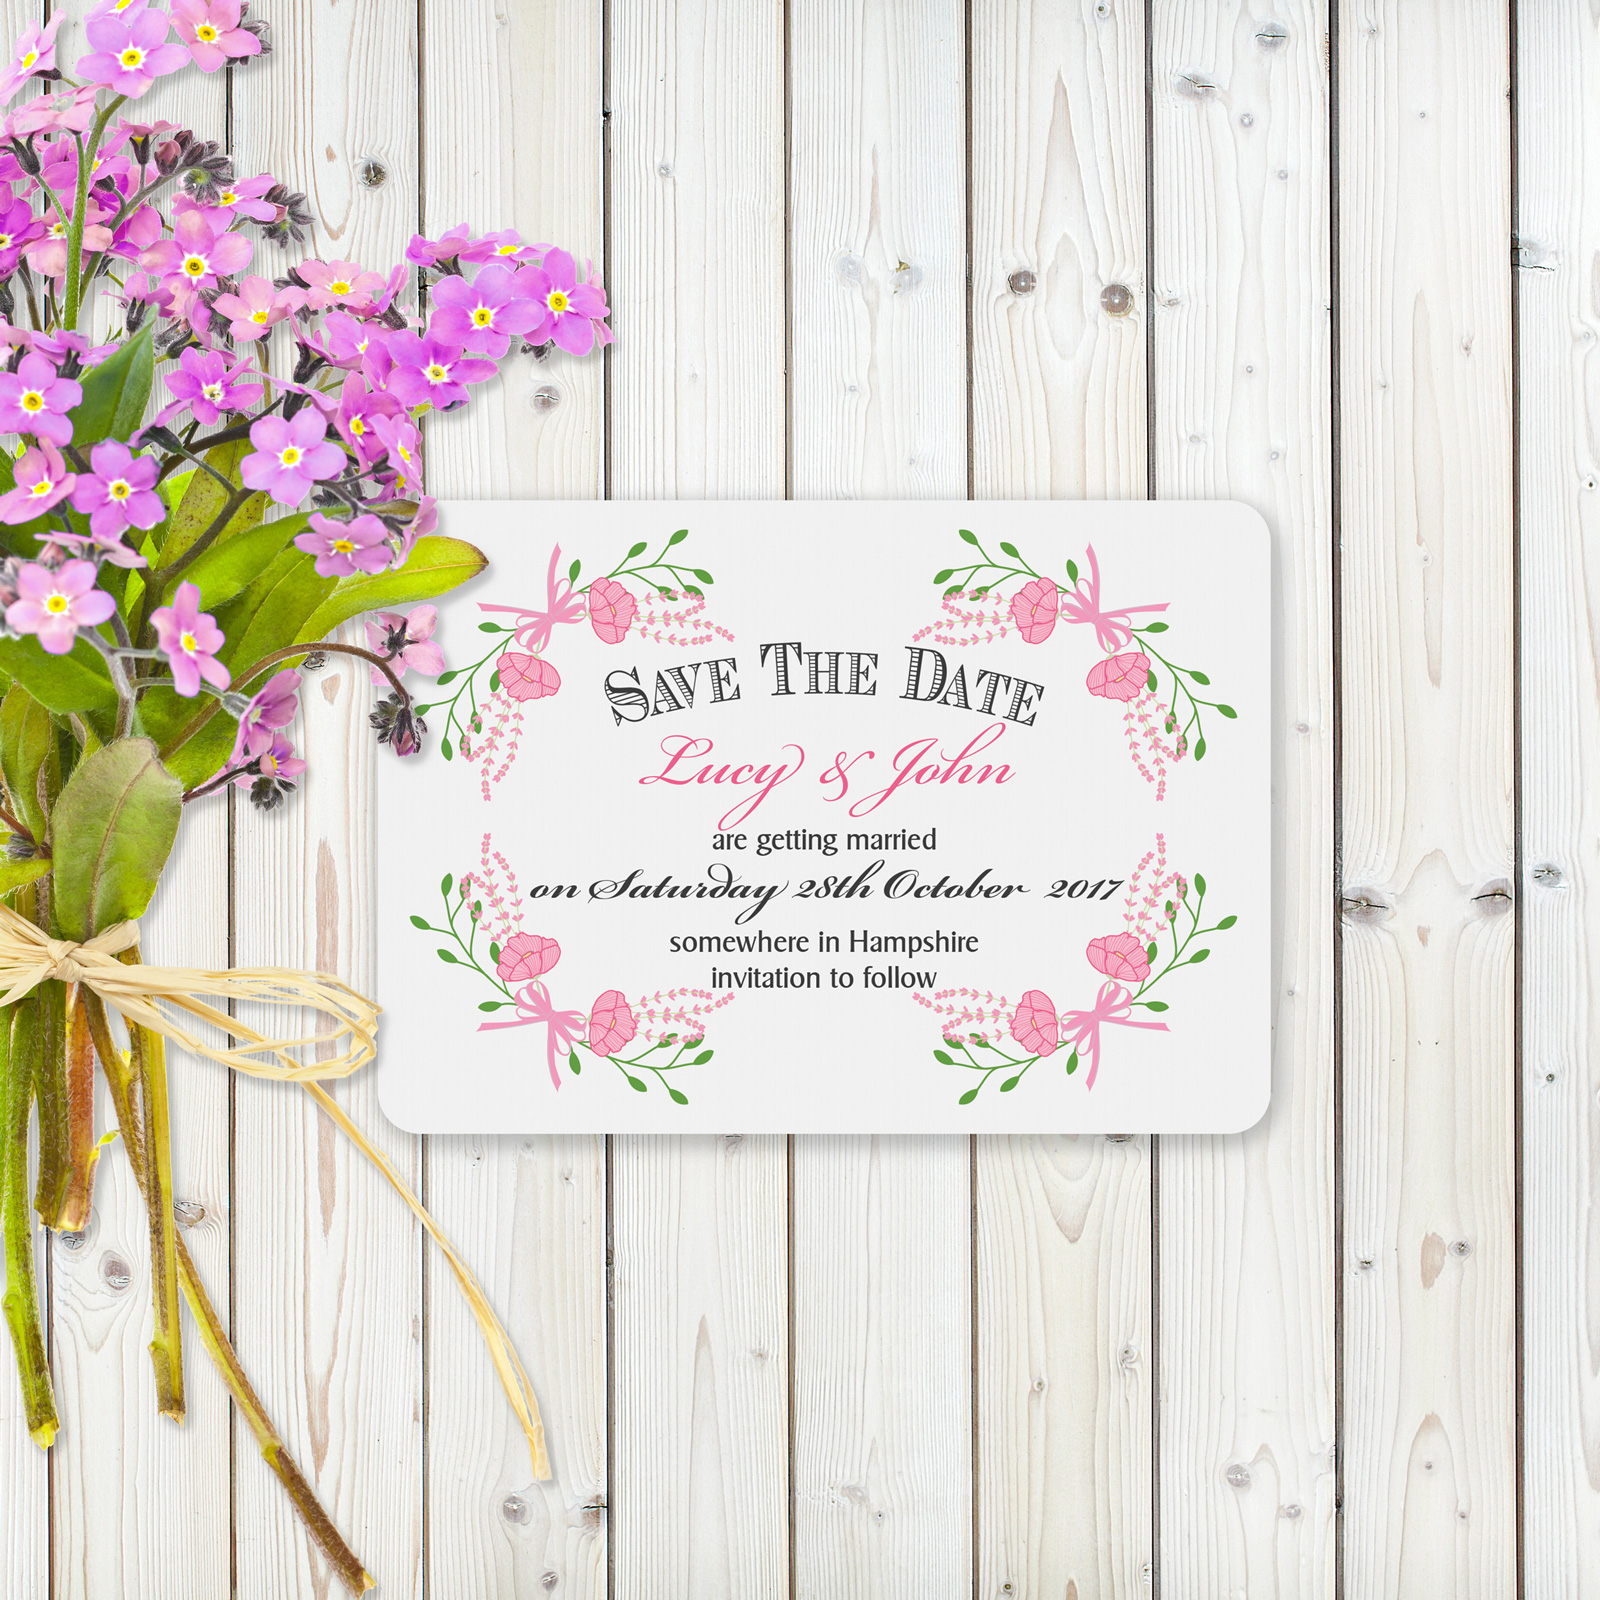 Save the Date cards from £0.50 ea